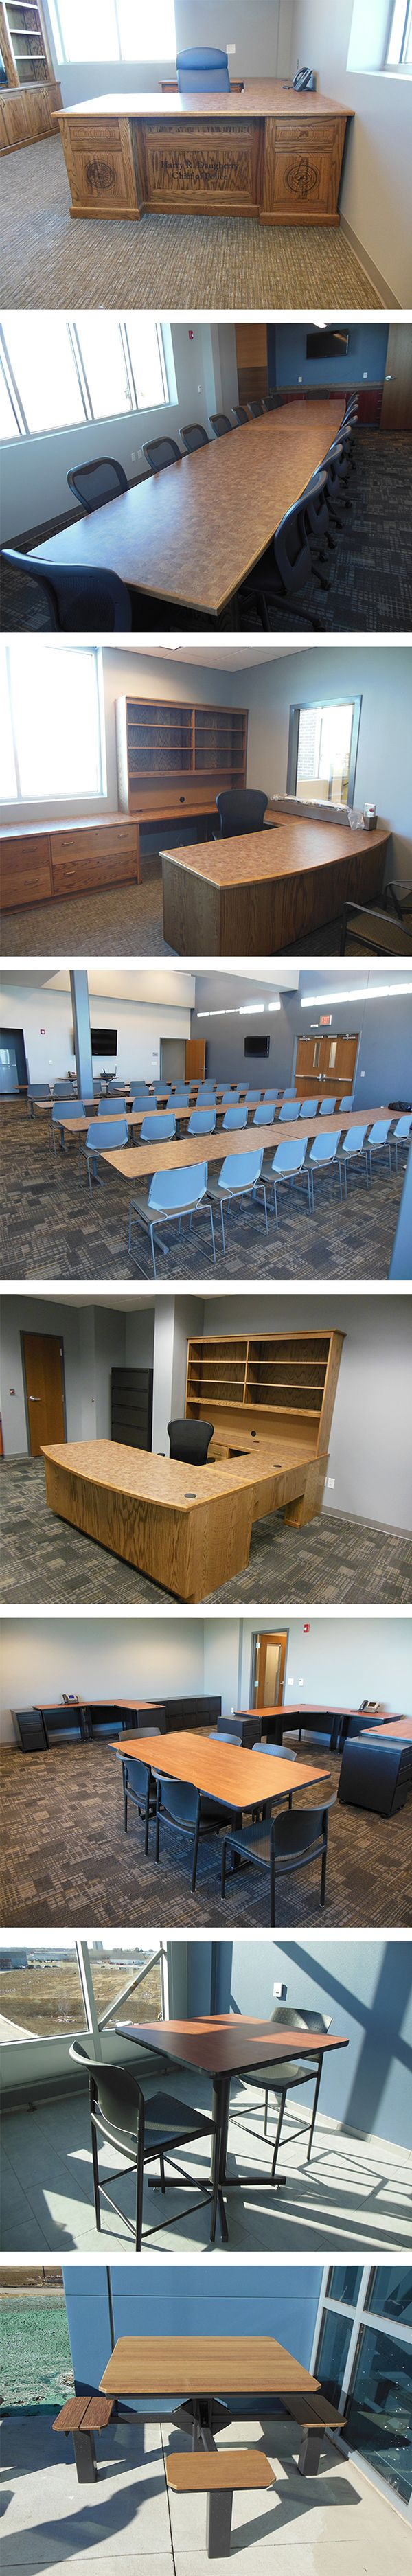 Iowa Prison Industries custom furnishing project: Marion Police Department